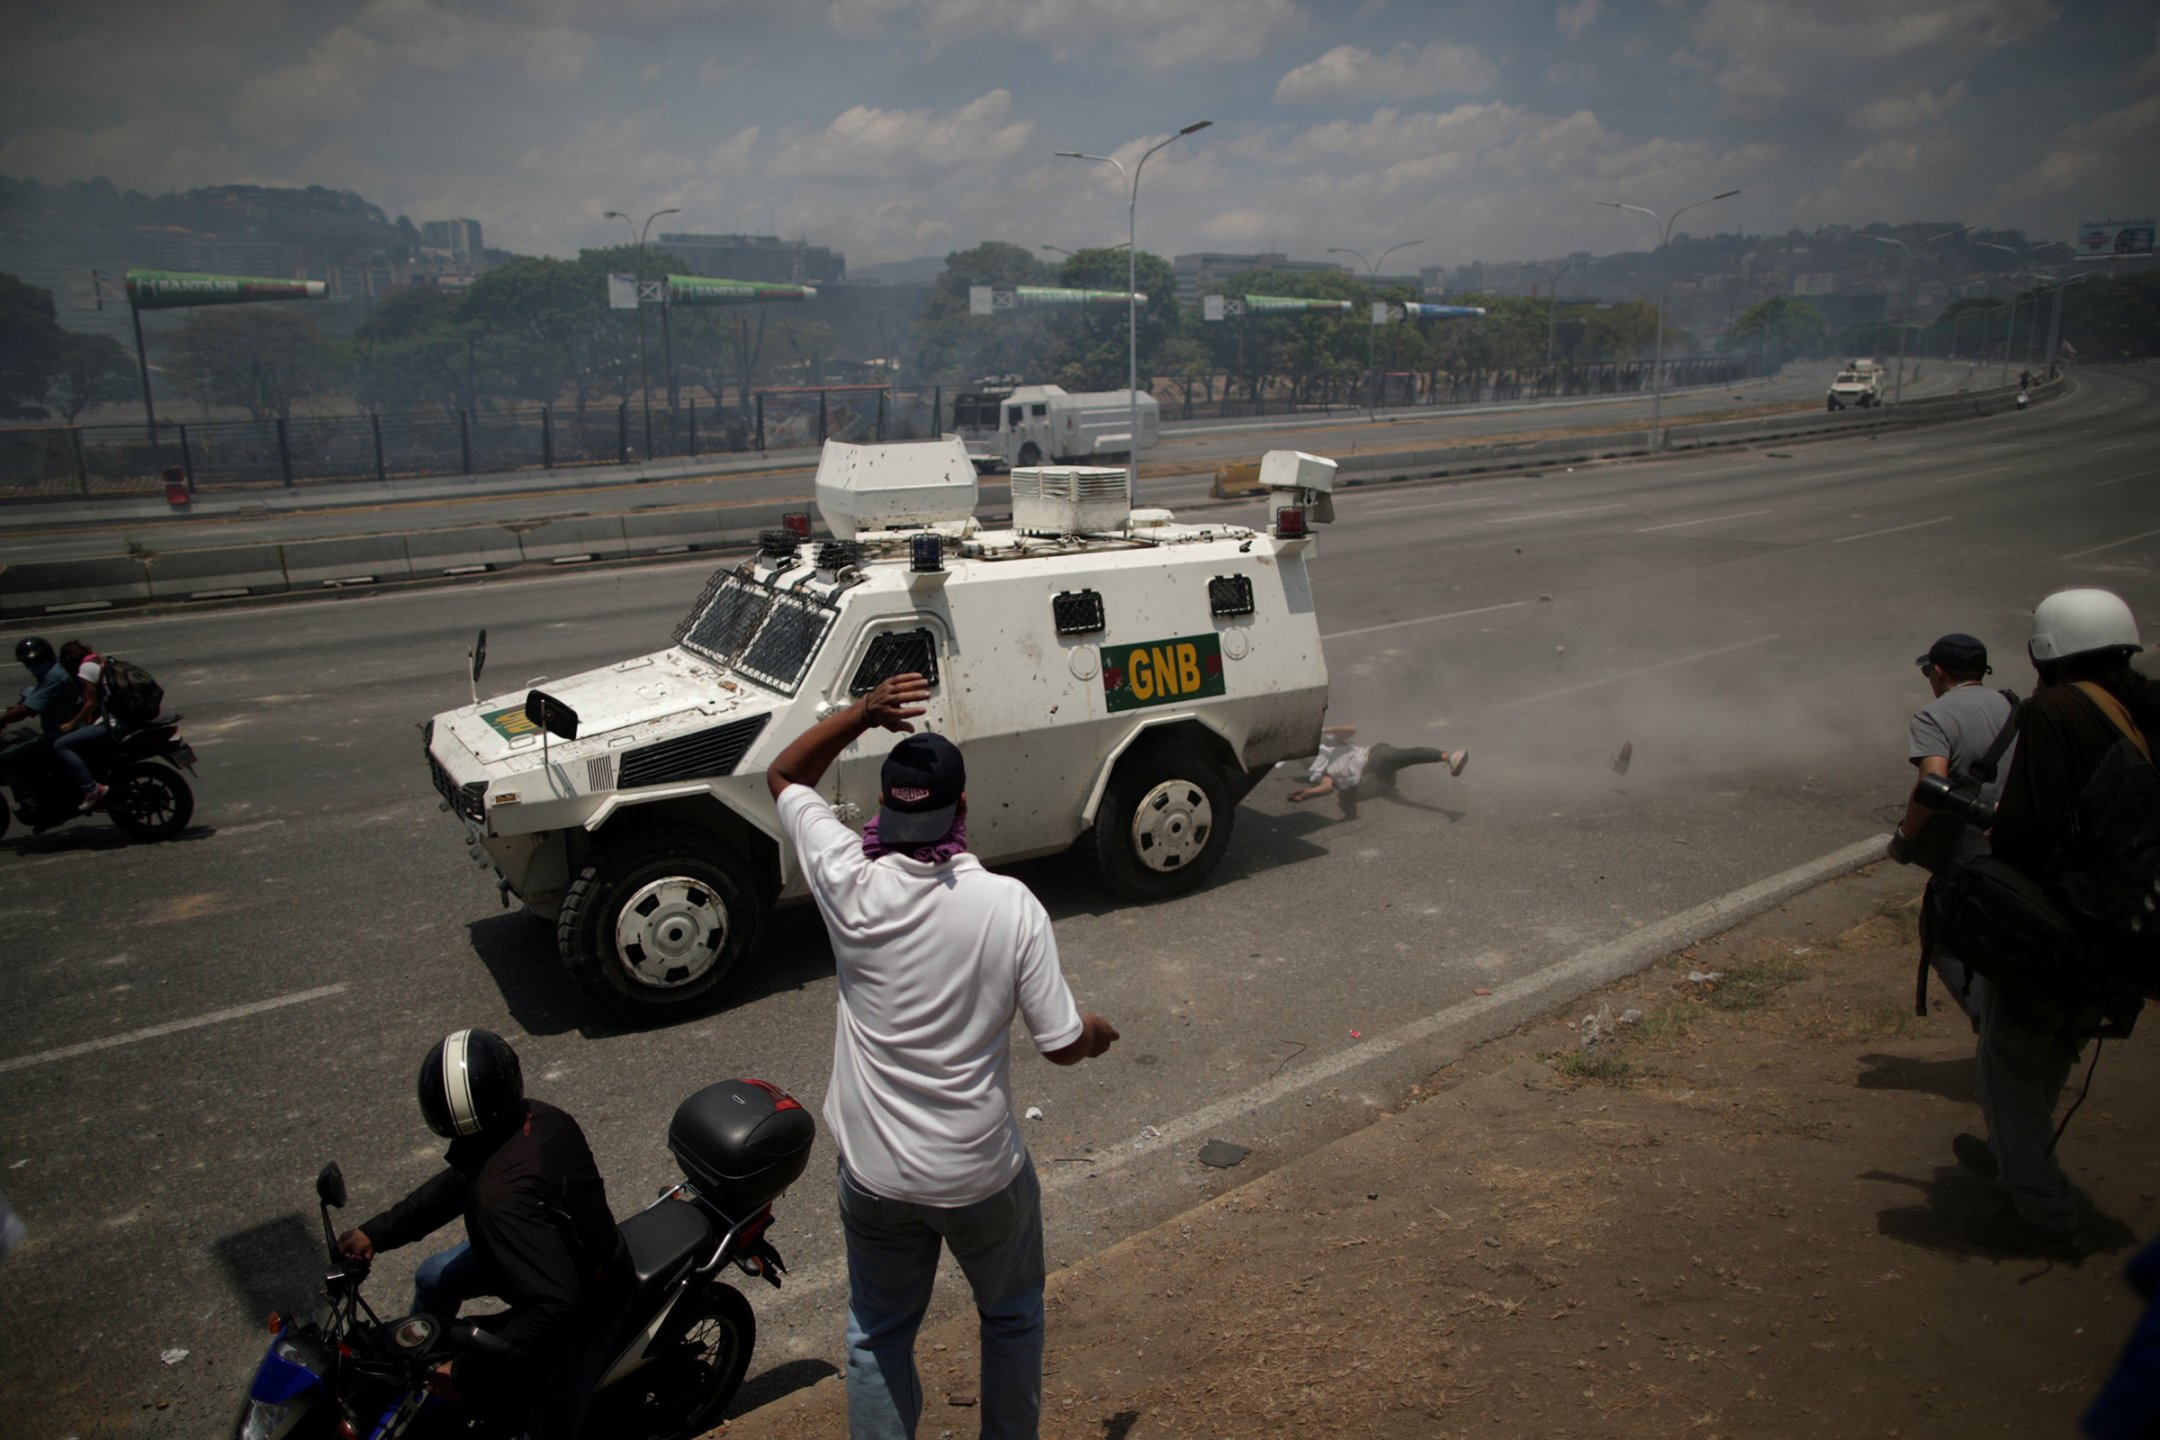 An opposition demonstrator is struck by a Venezuelan National Guard vehicle in Caracas on April 30. The protester survived the brush with death.